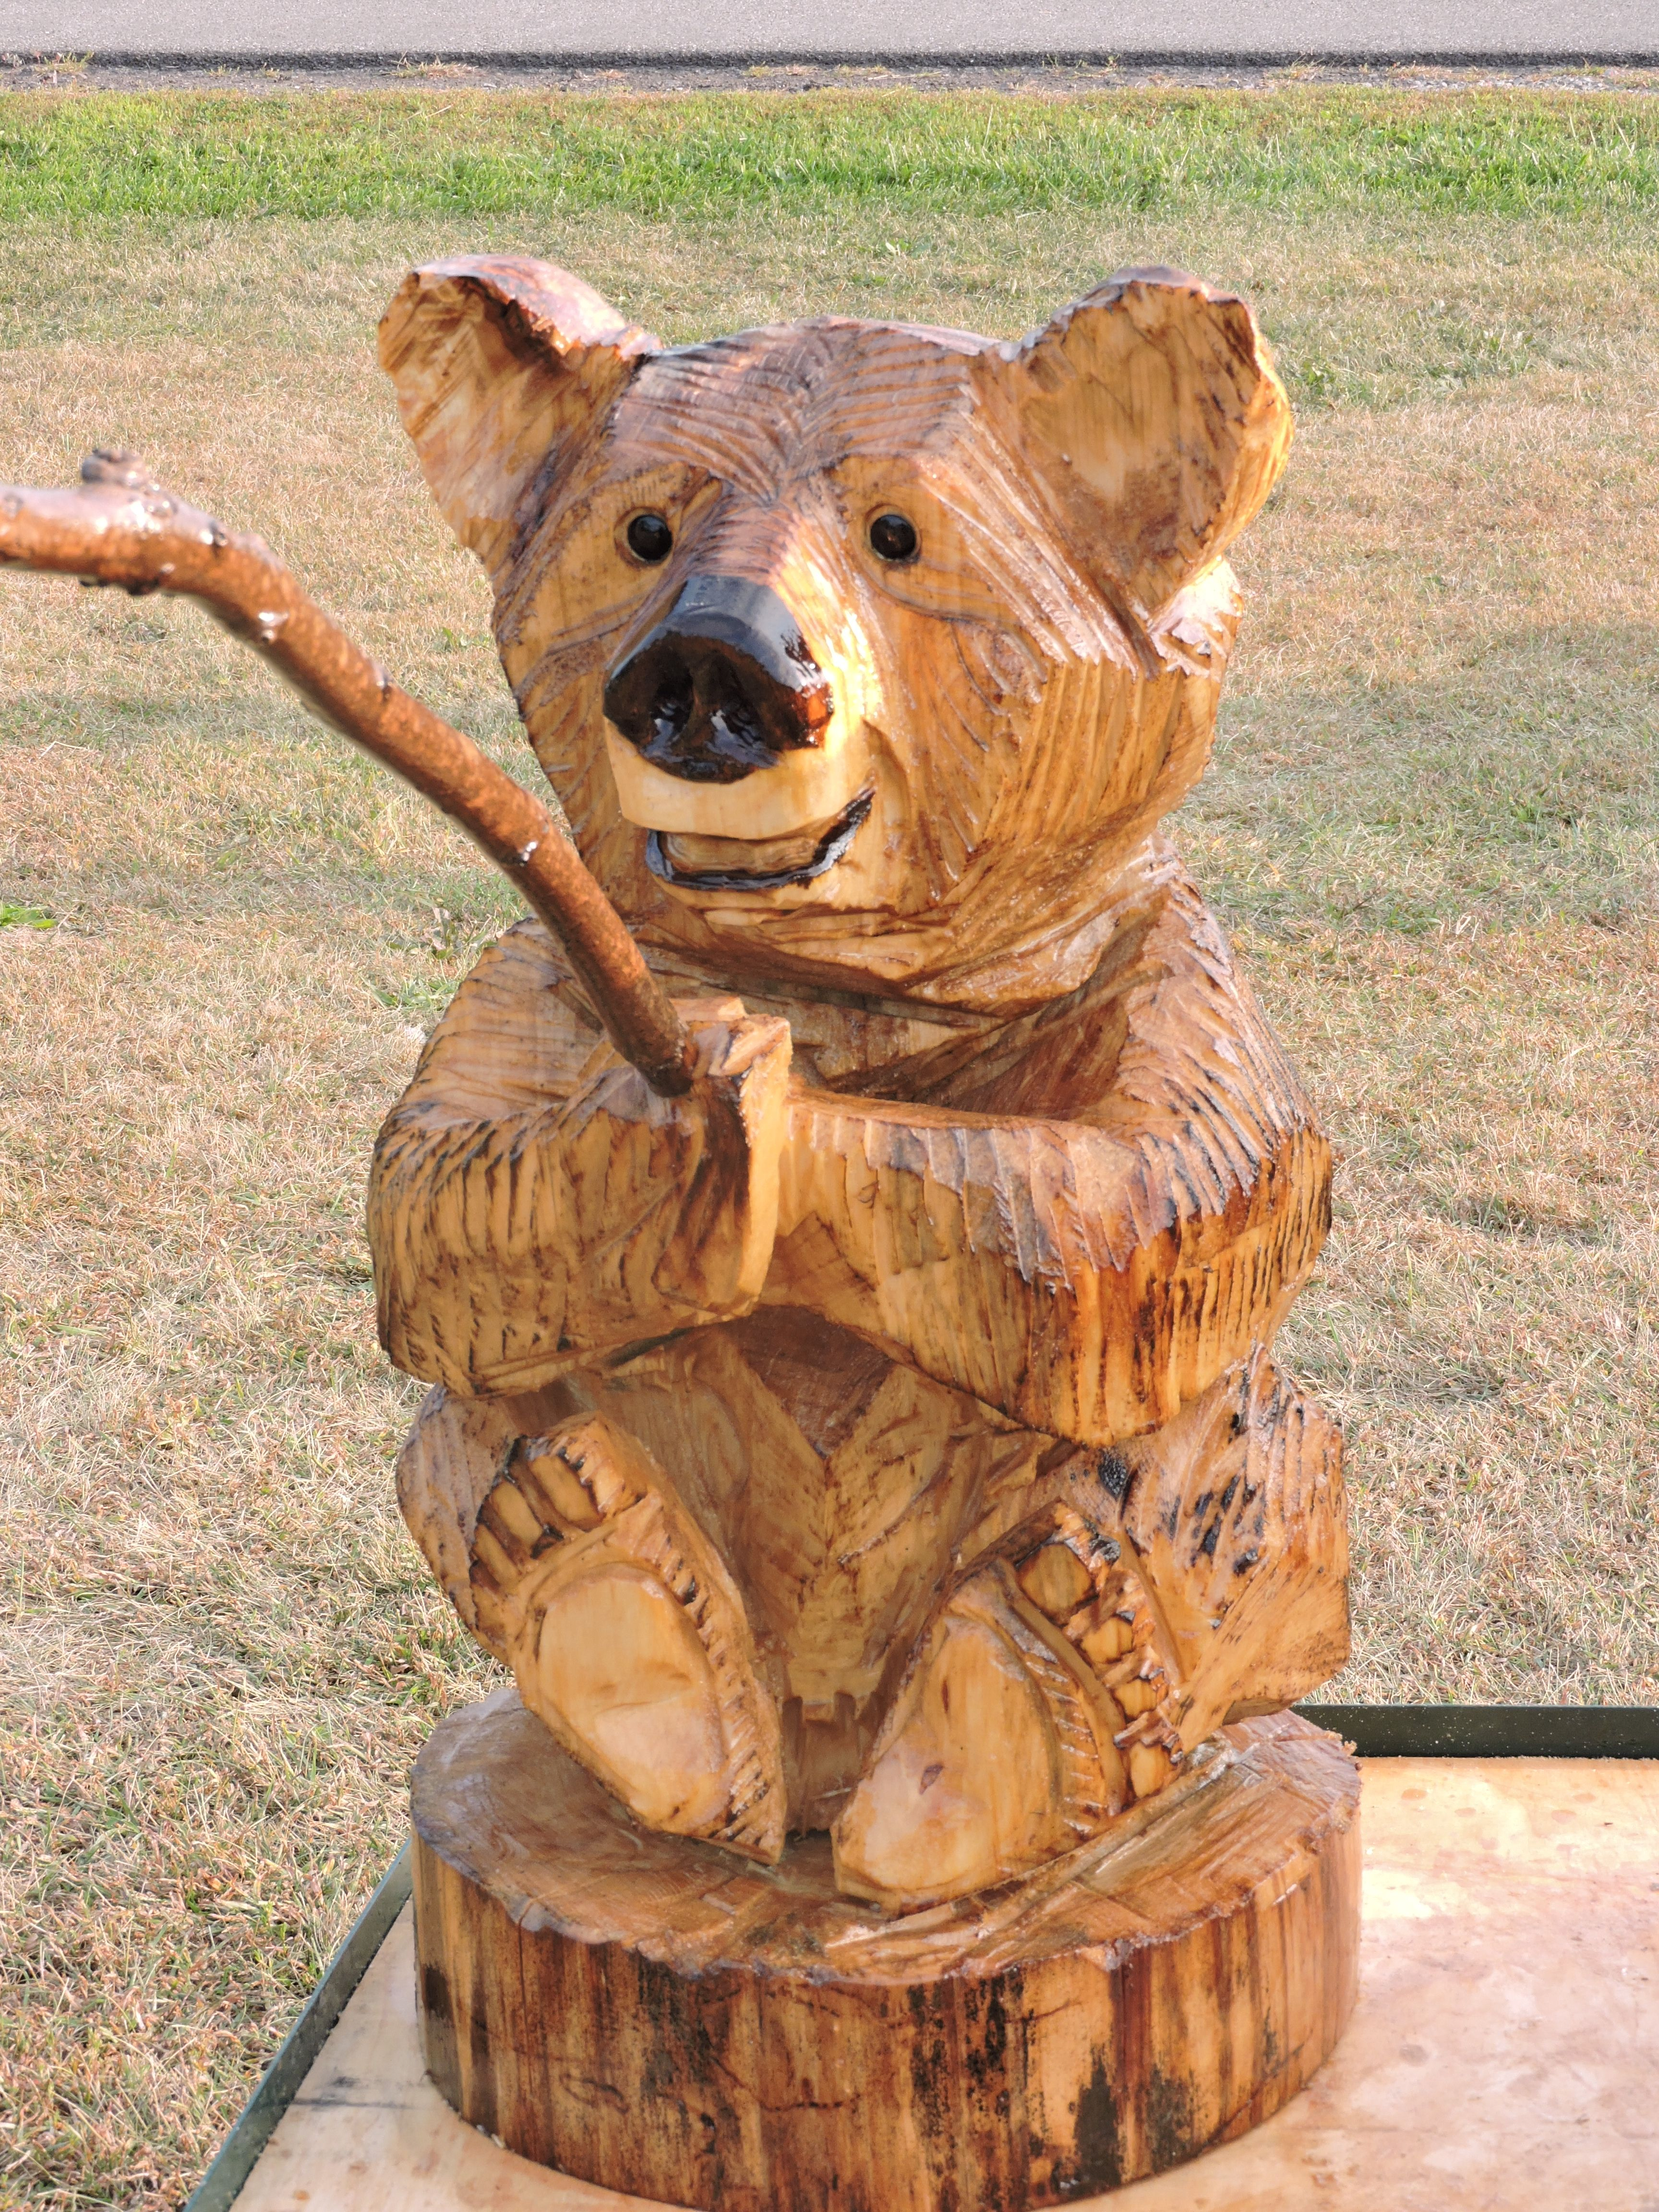 Fishing, Bear, Chainsaw Carving, Lawn Decoration, Chainsaw Art, Wood Statue, Carving, Yard Decoration